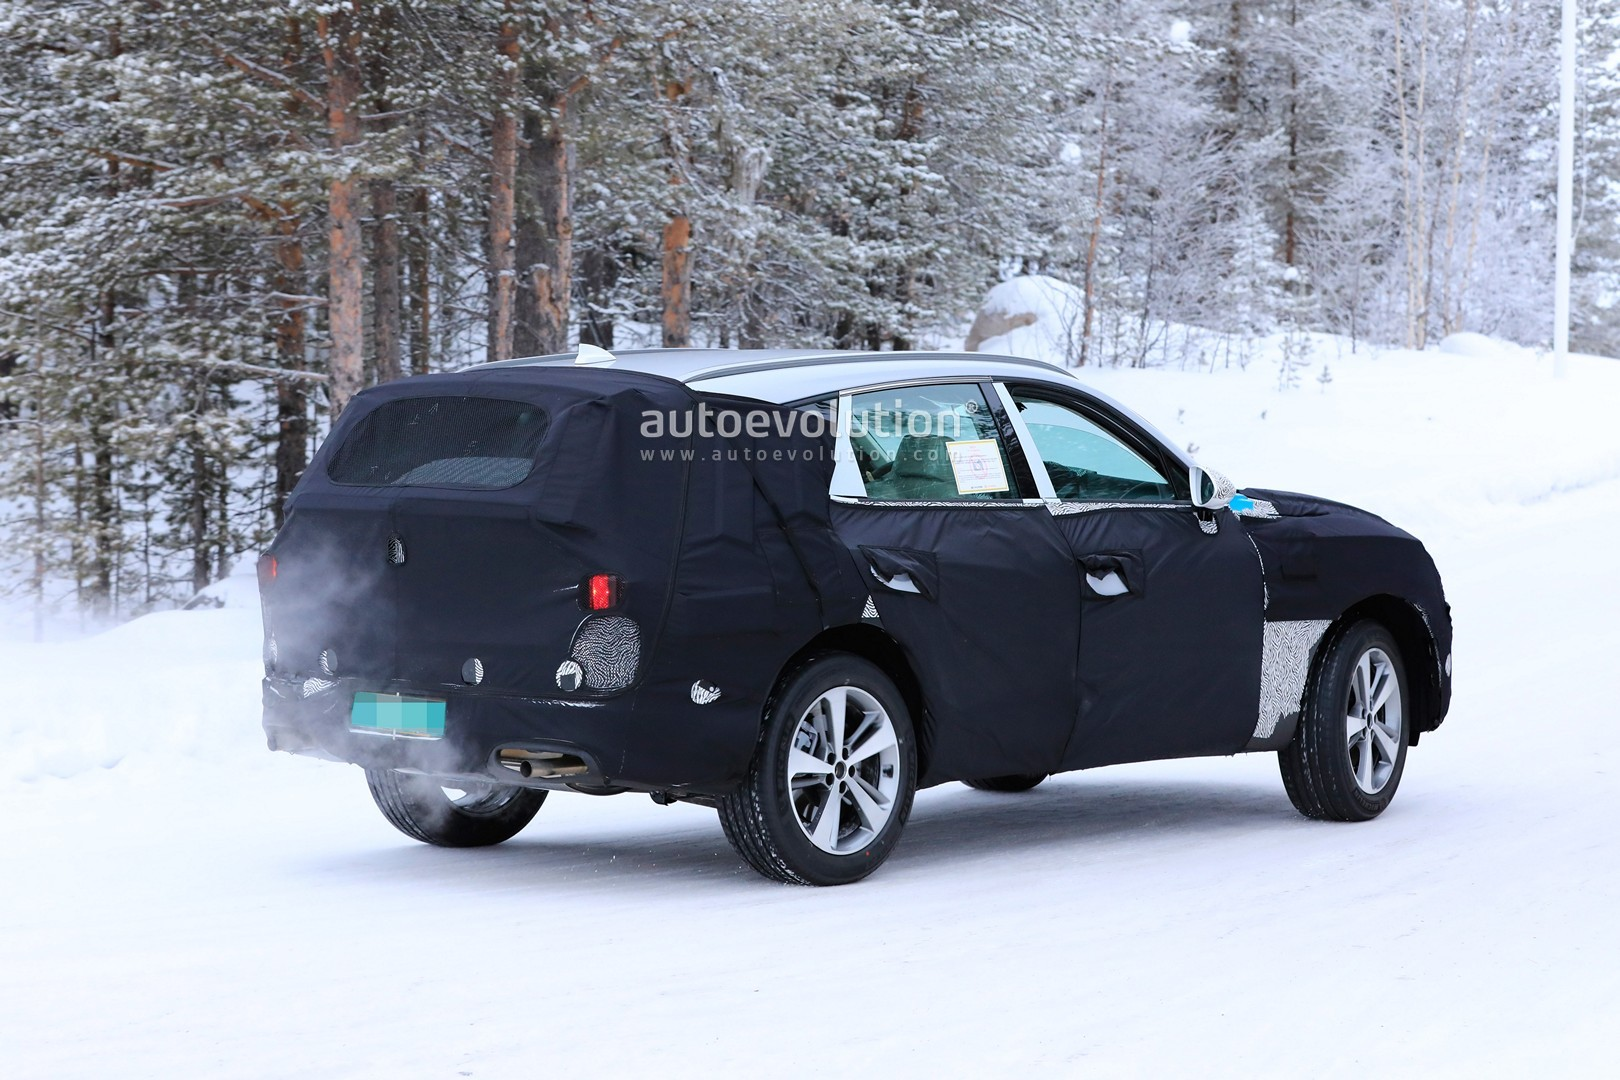 2019 - [Genesis] SUV GV80 - Page 2 Genesis-gv80-suv-prototype-makes-production-spyshots-debut_12